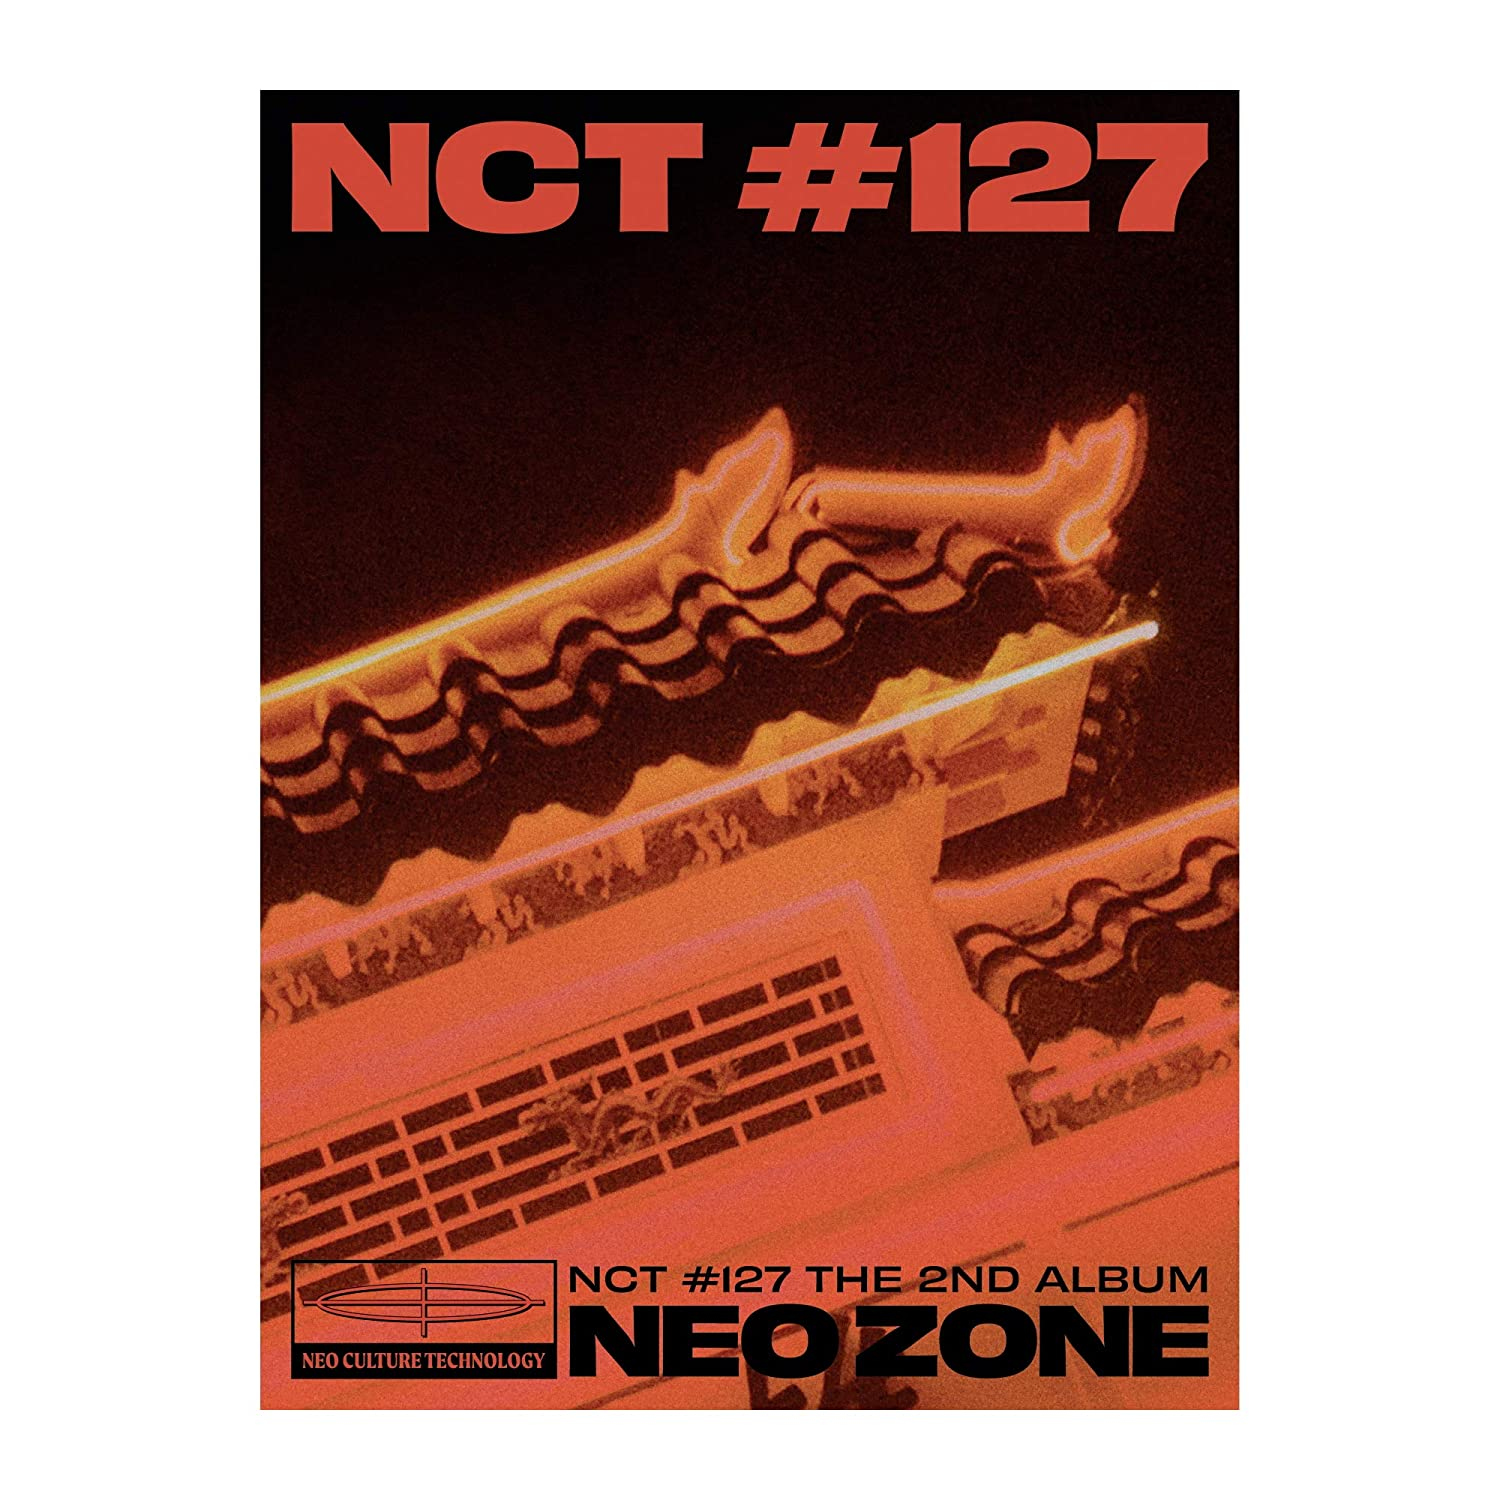 NCT 127 NCT #127 Neo Zone 2nd Album T Ver CD+1p Folding Poster On+160p PhotoBook+1p Lenticular Card+1p Sticker+Mini Sticker+1p PhotoCard+1p Circle Card+Message PhotoCard SET+Tracking Kpop Sealed